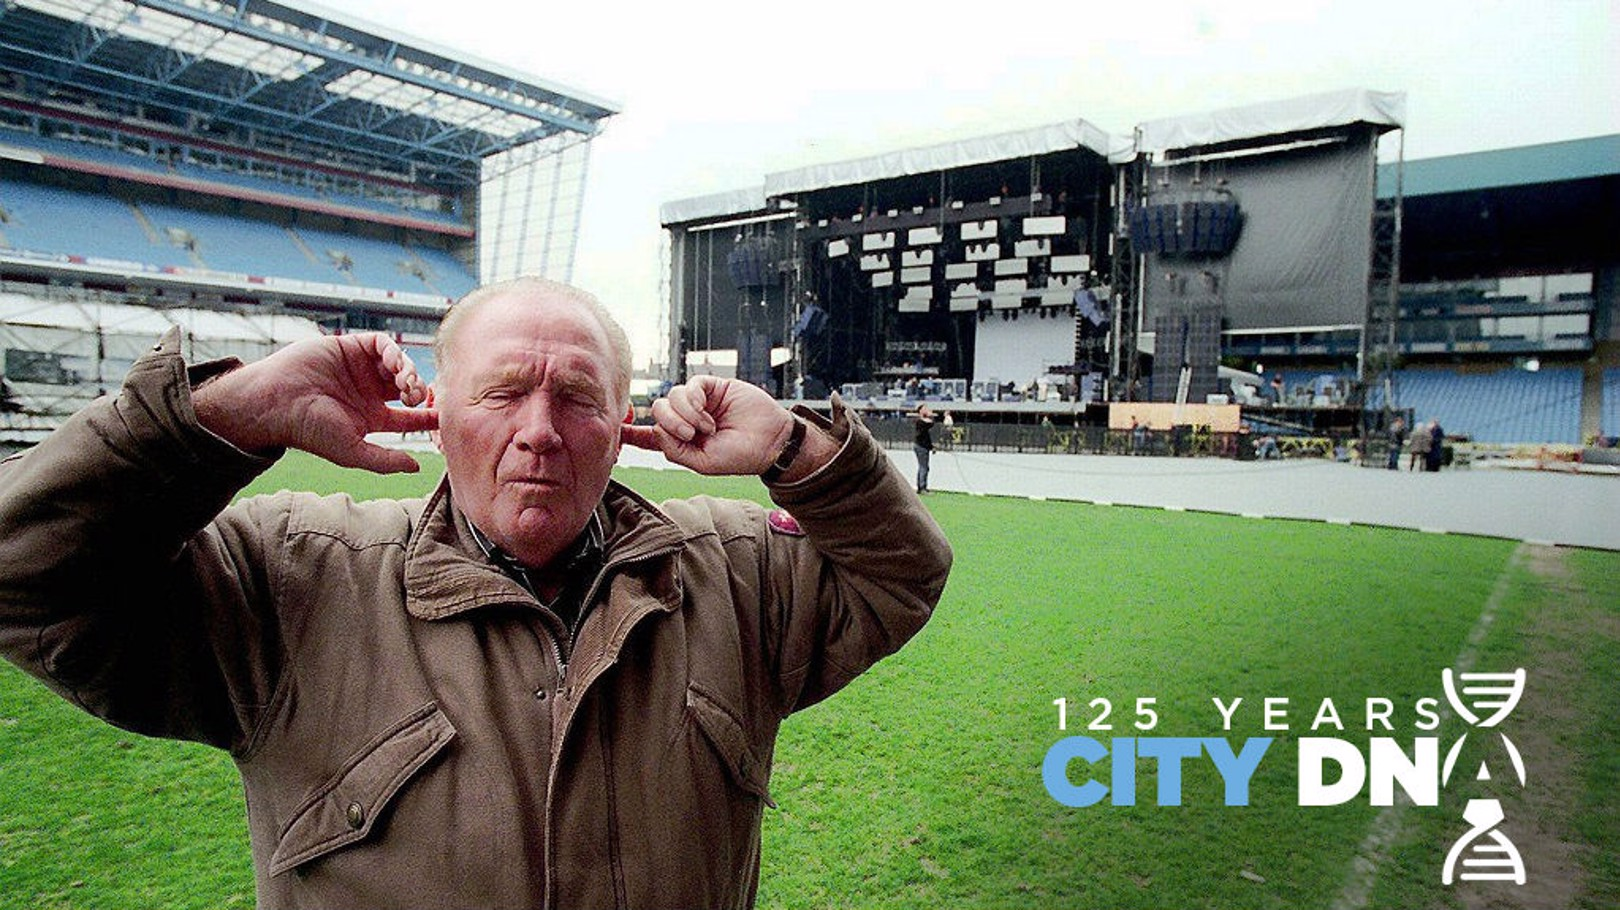 City DNA: #24 Stan Gibson - pitching in for City